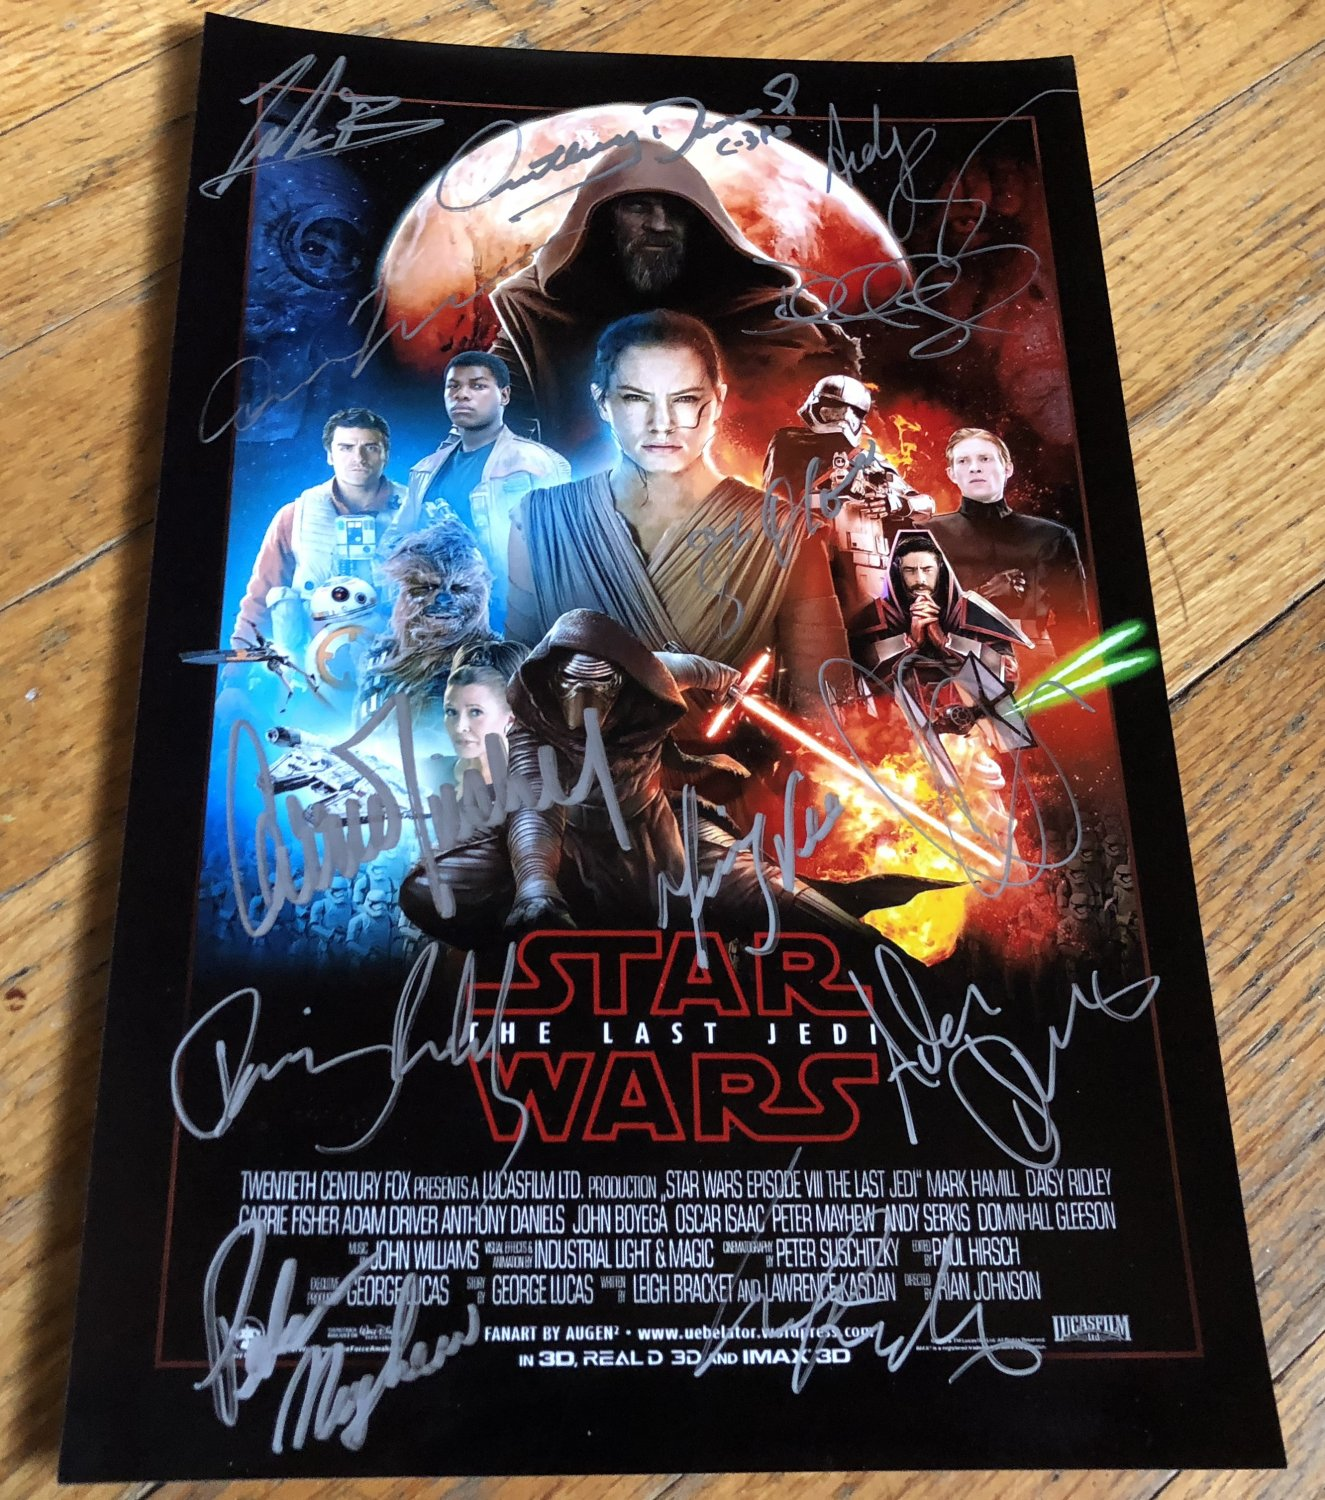 Star Wars The Last Jedi cast signed autographed 8x12 photo photograph Daisy Ridley Carrie Fisher